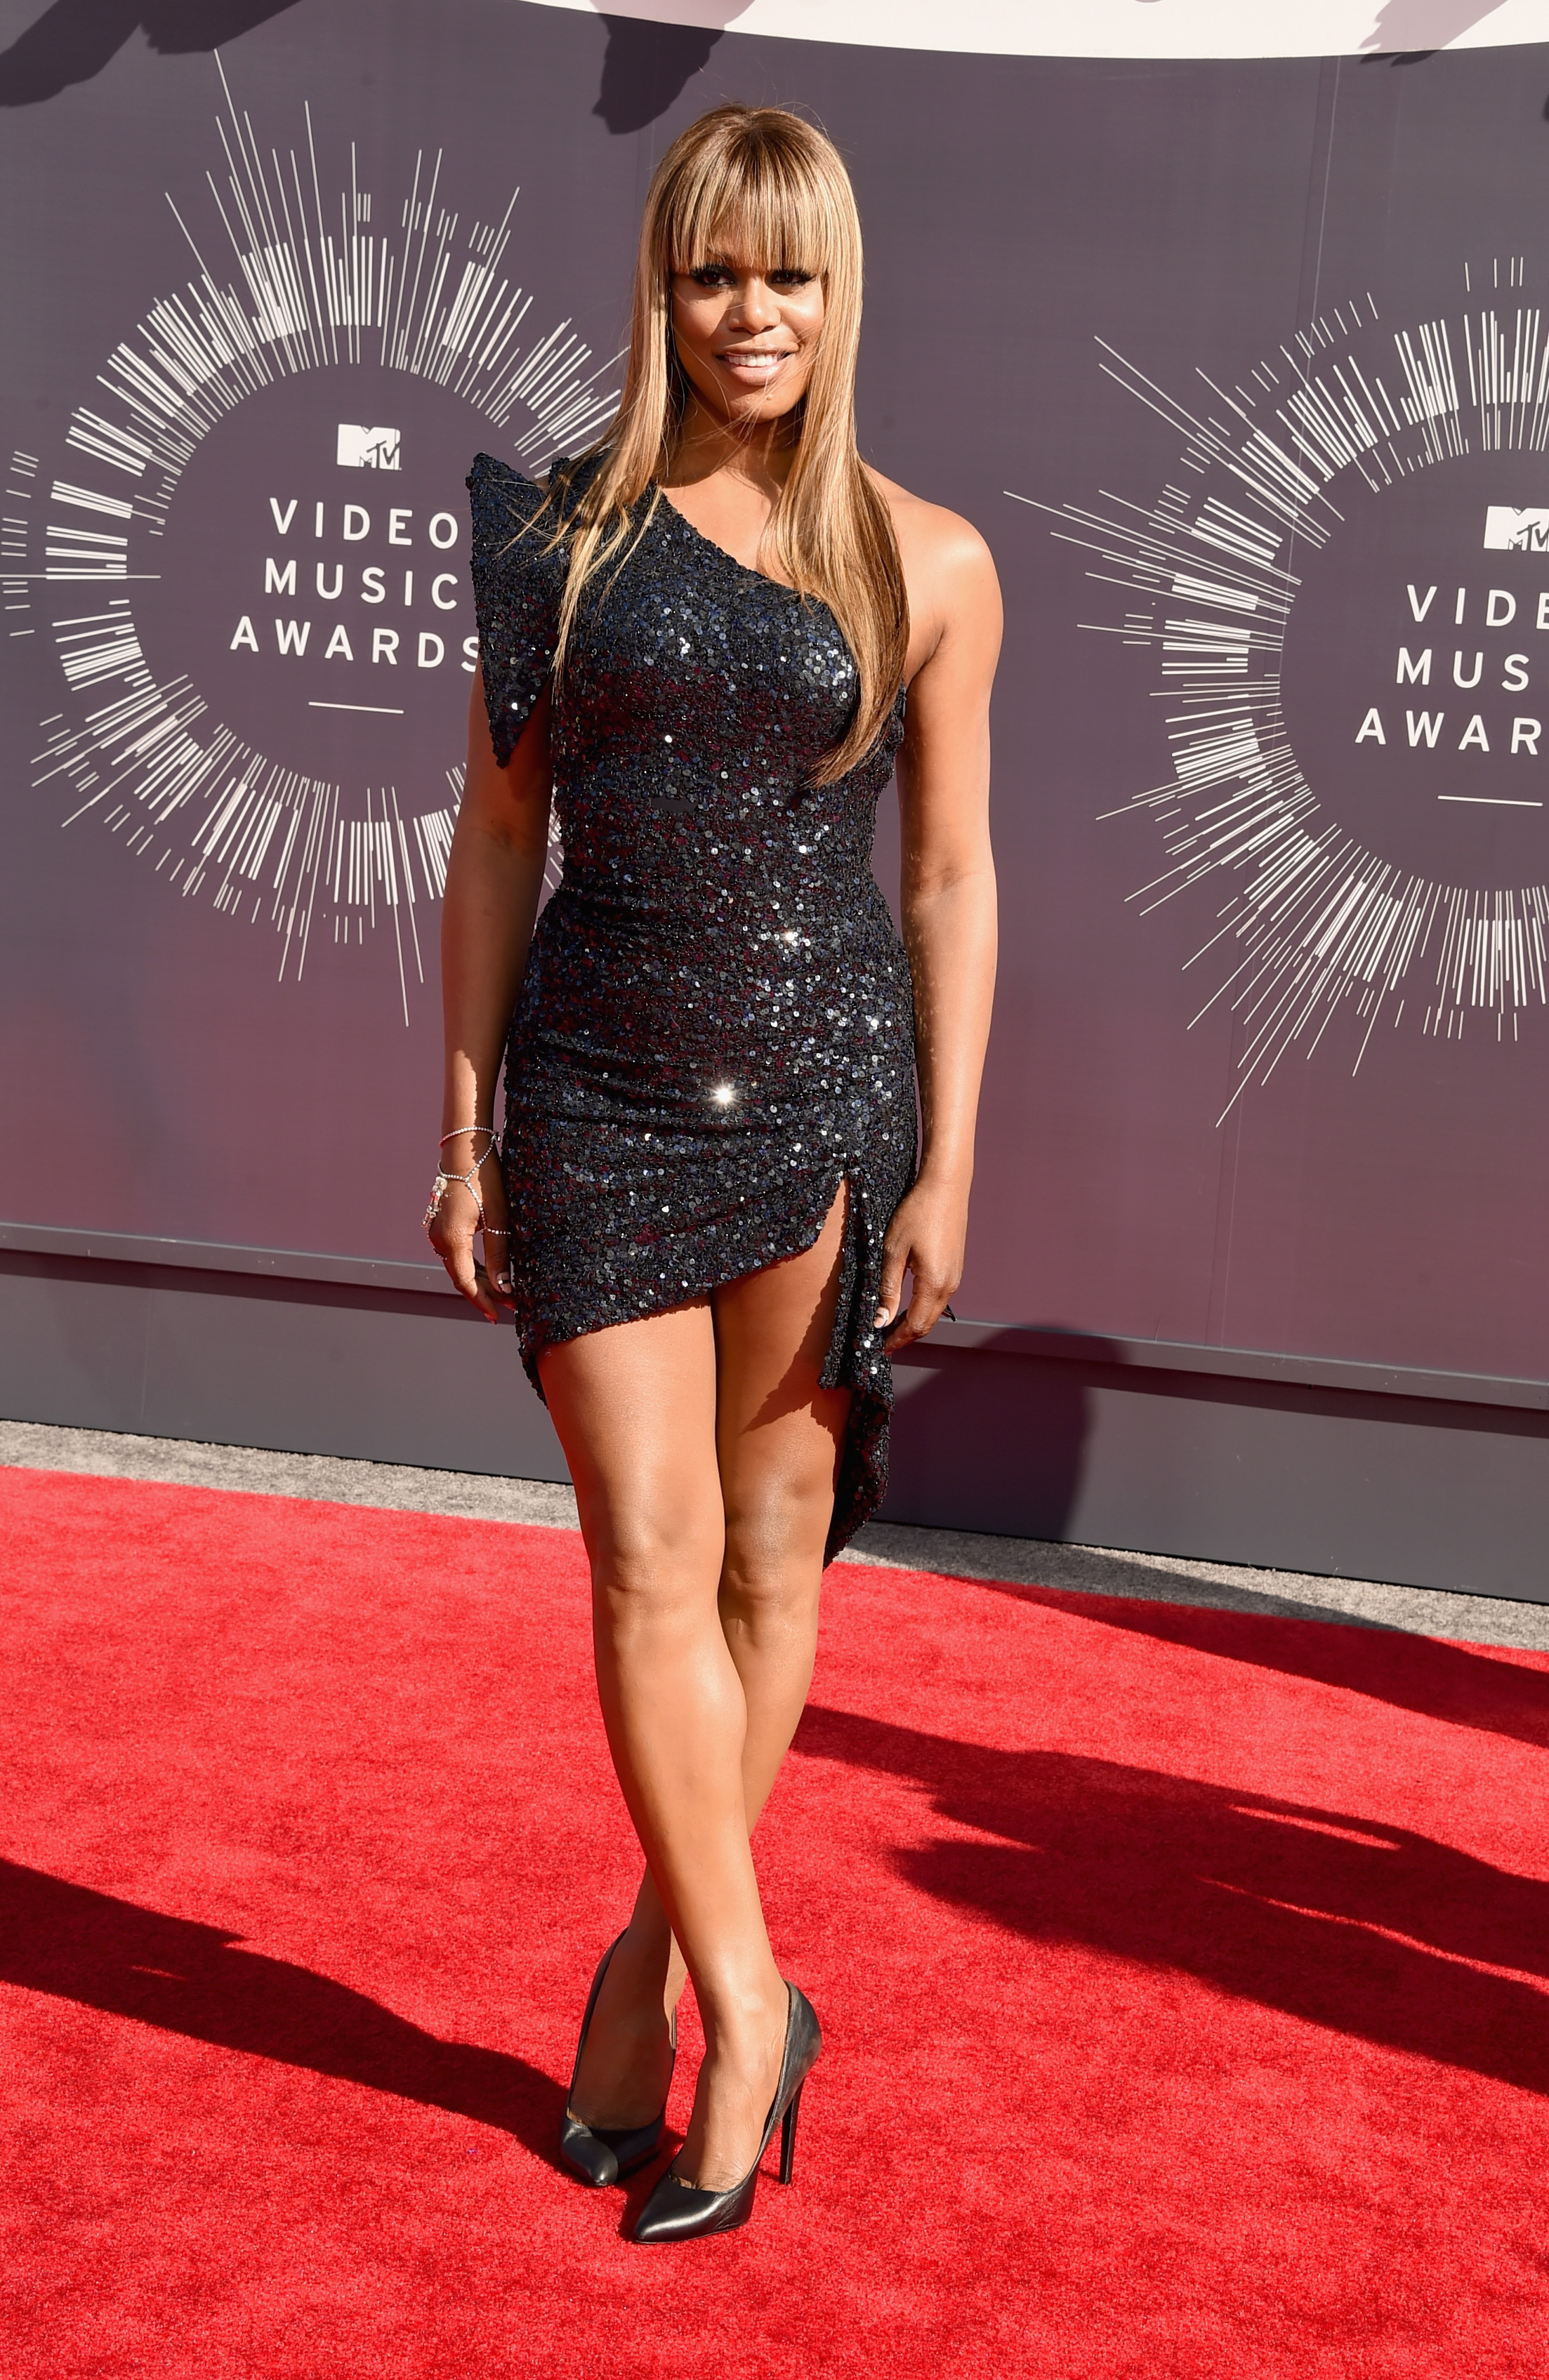 Laverne Cox attends the 2014 MTV Video Music Awards at The Forum on August 24, 2014 in Inglewood, California.